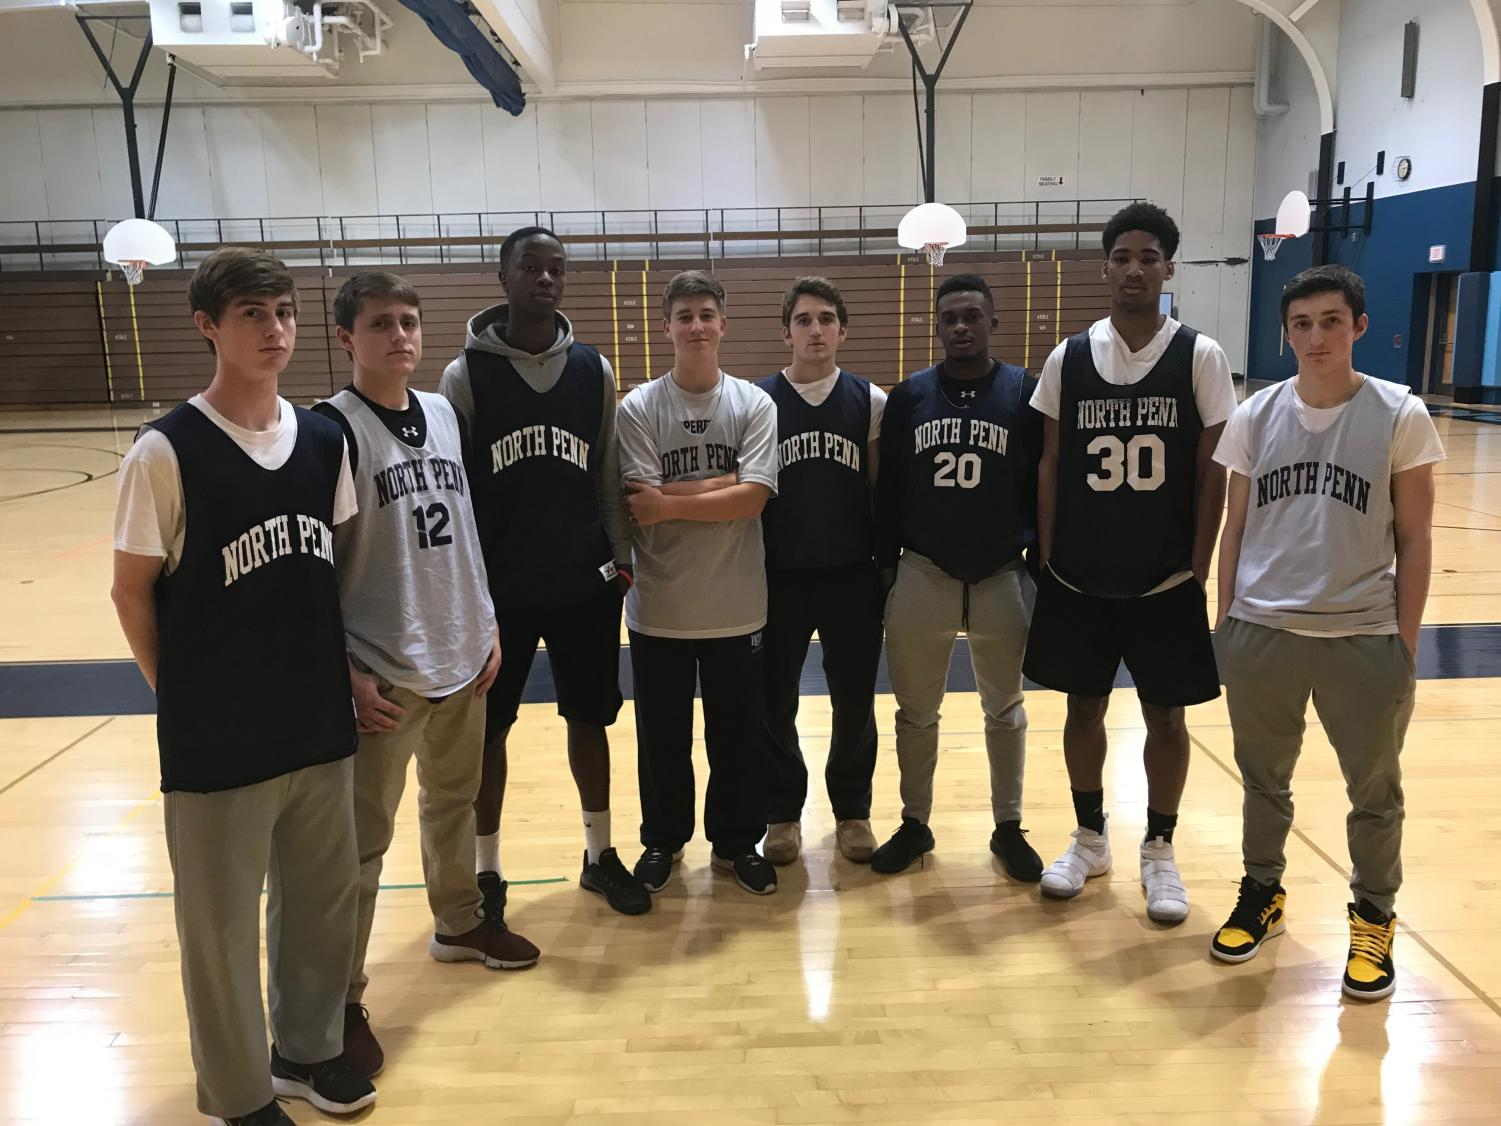 WINTER SPORTS PREVIEW - The North Penn Boys Basketball team gathers for a picture while at practice on December 1st, 2017. With key loses from last year, the team is looking for new players to step up.